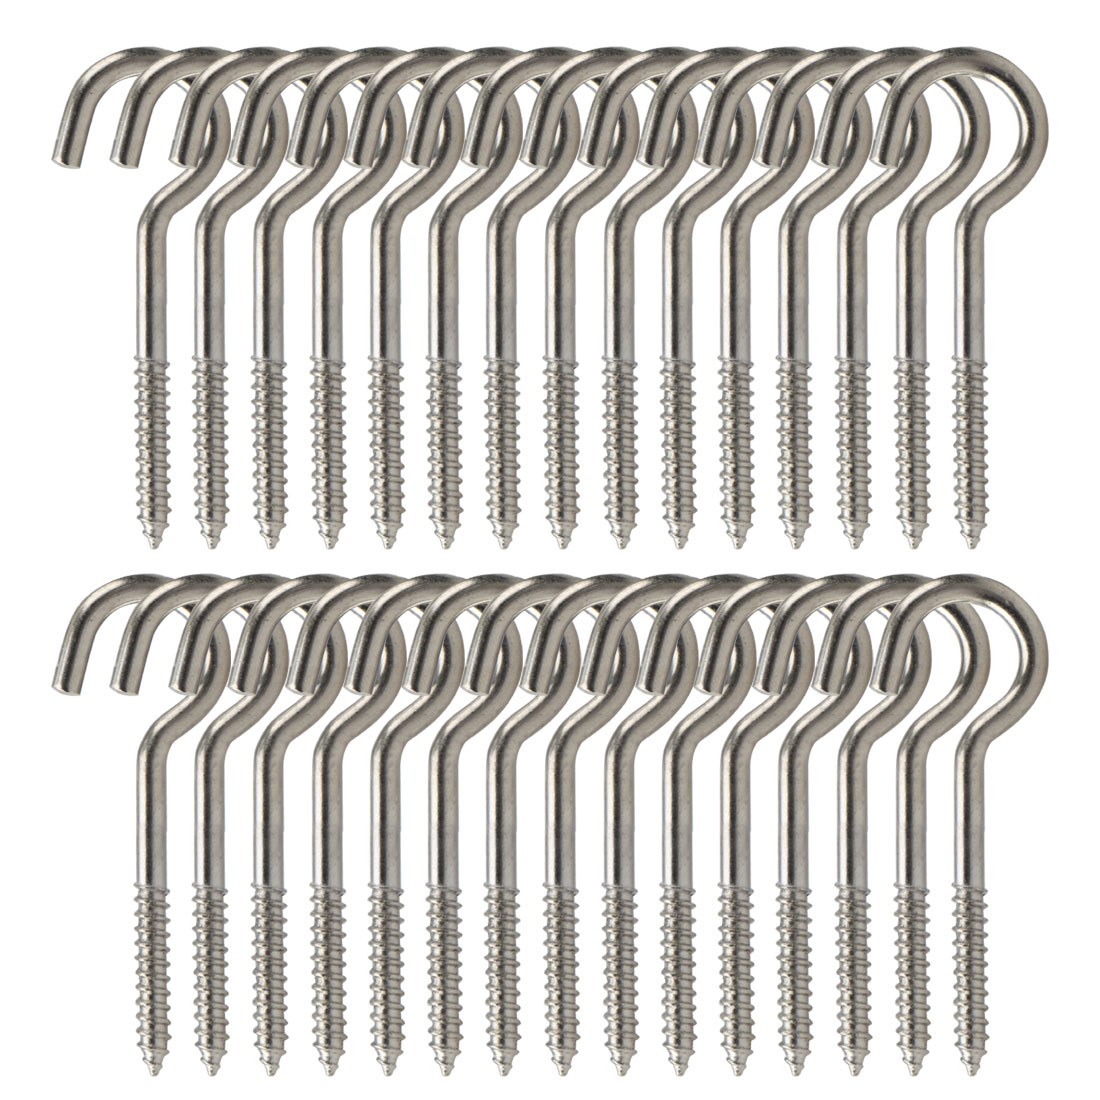 30pcs Cup Ceiling Hooks 1 Inch Durable Metal Screw in Hanger Hook Silver Gray